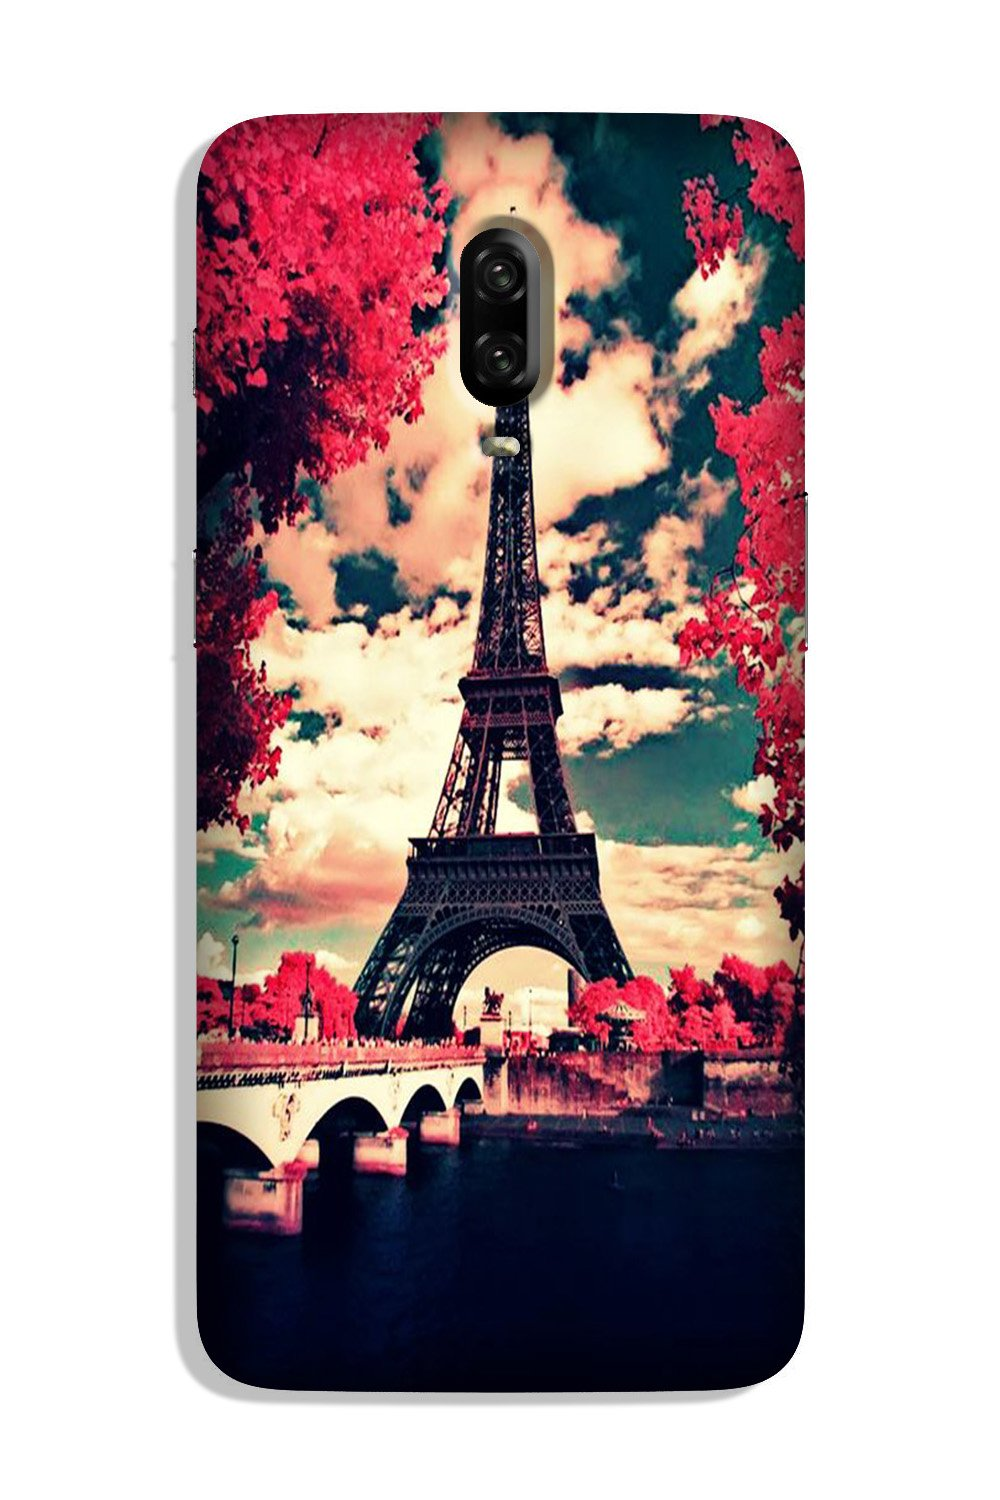 Eiffel Tower Case for OnePlus 6T (Design No. 212)